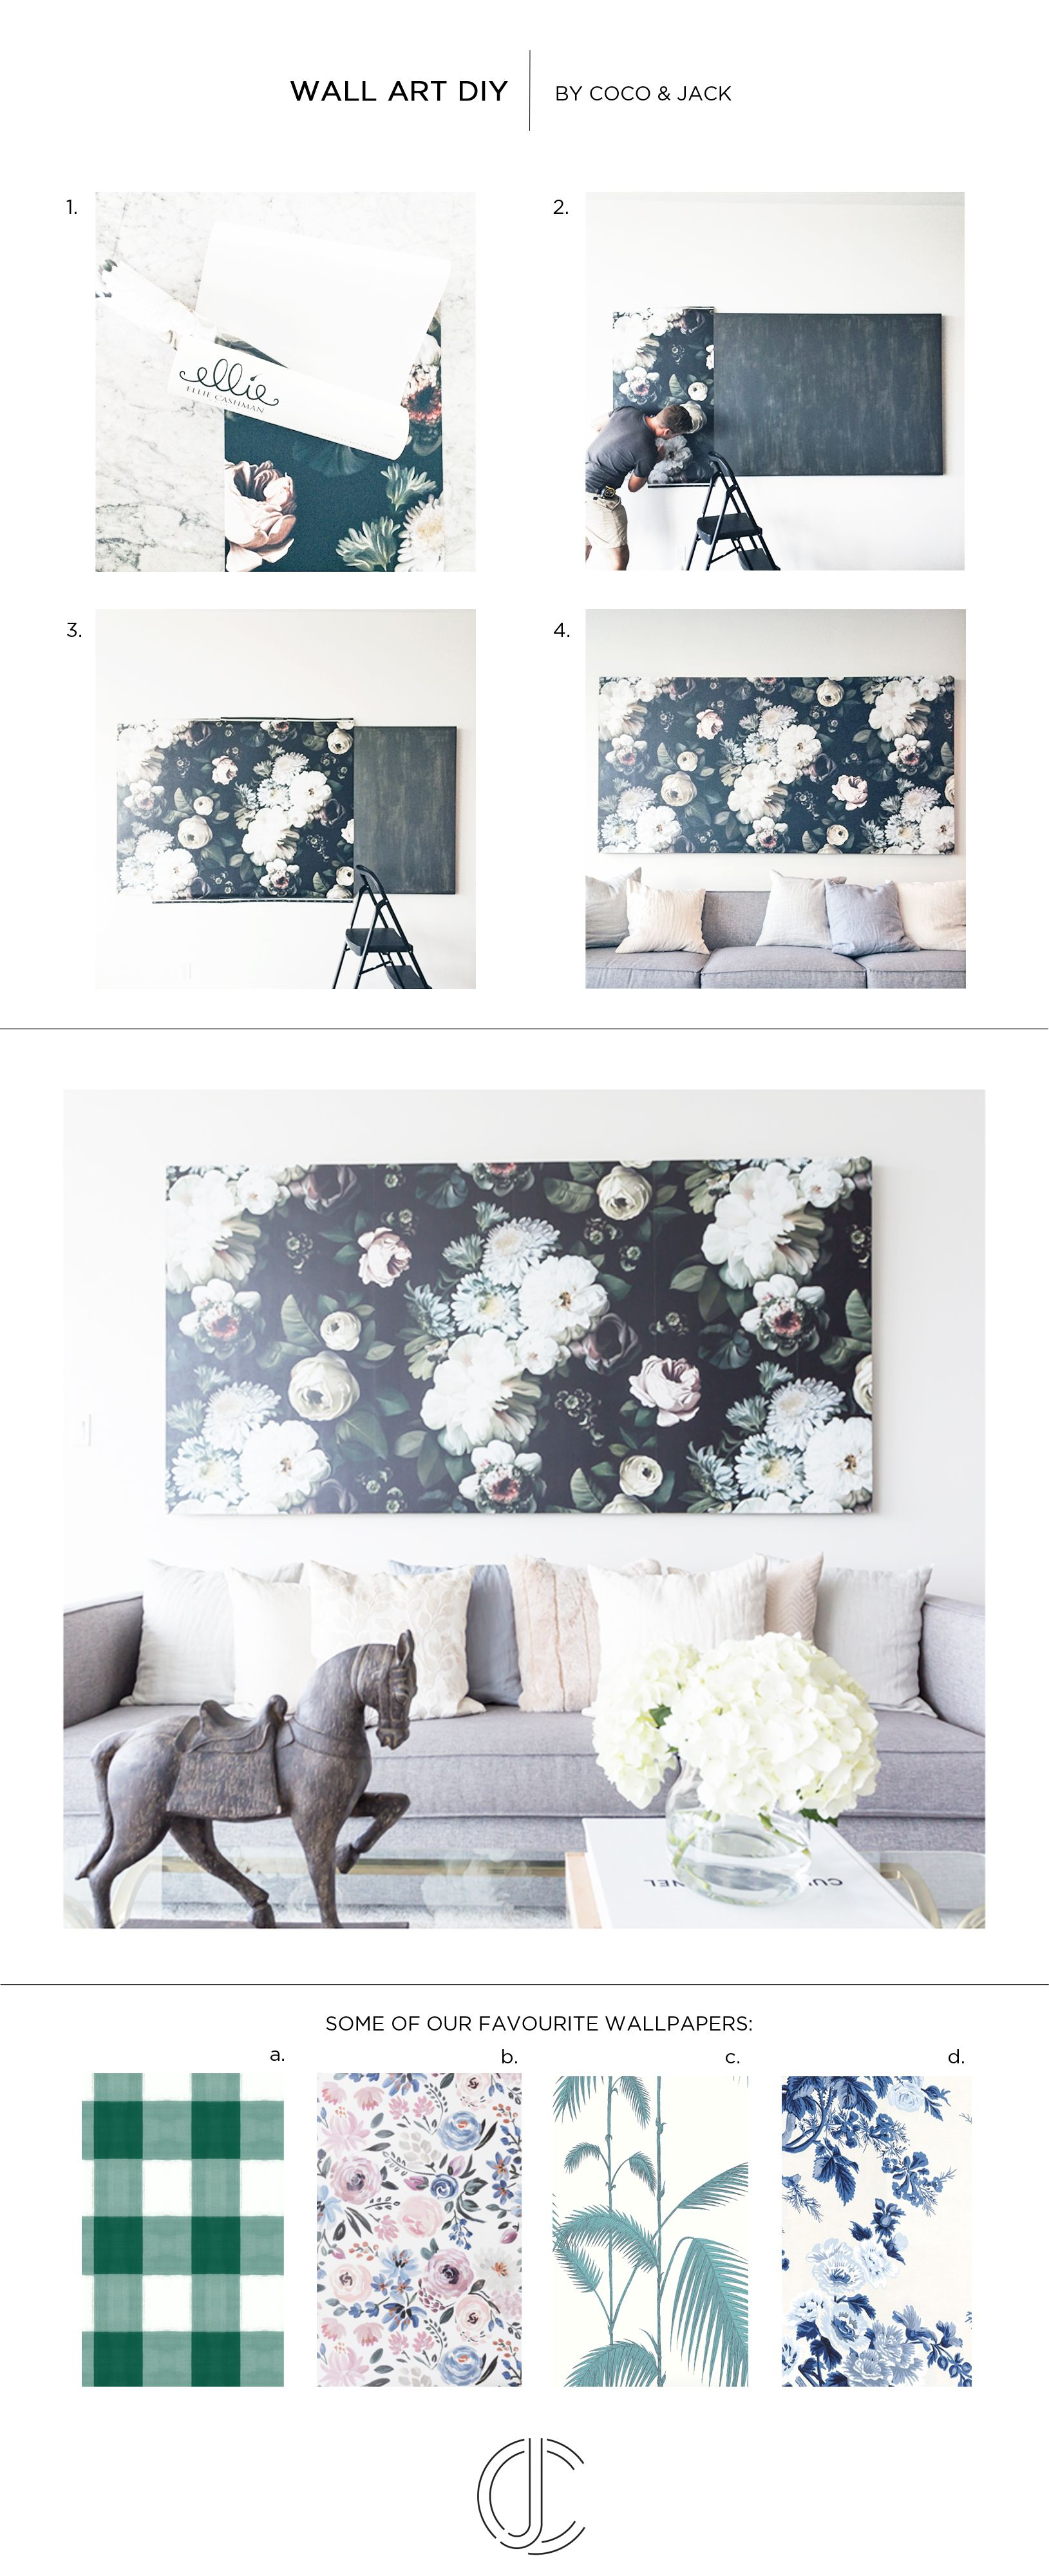 Diy wall art bless this house pinterest diy wall diy wall art